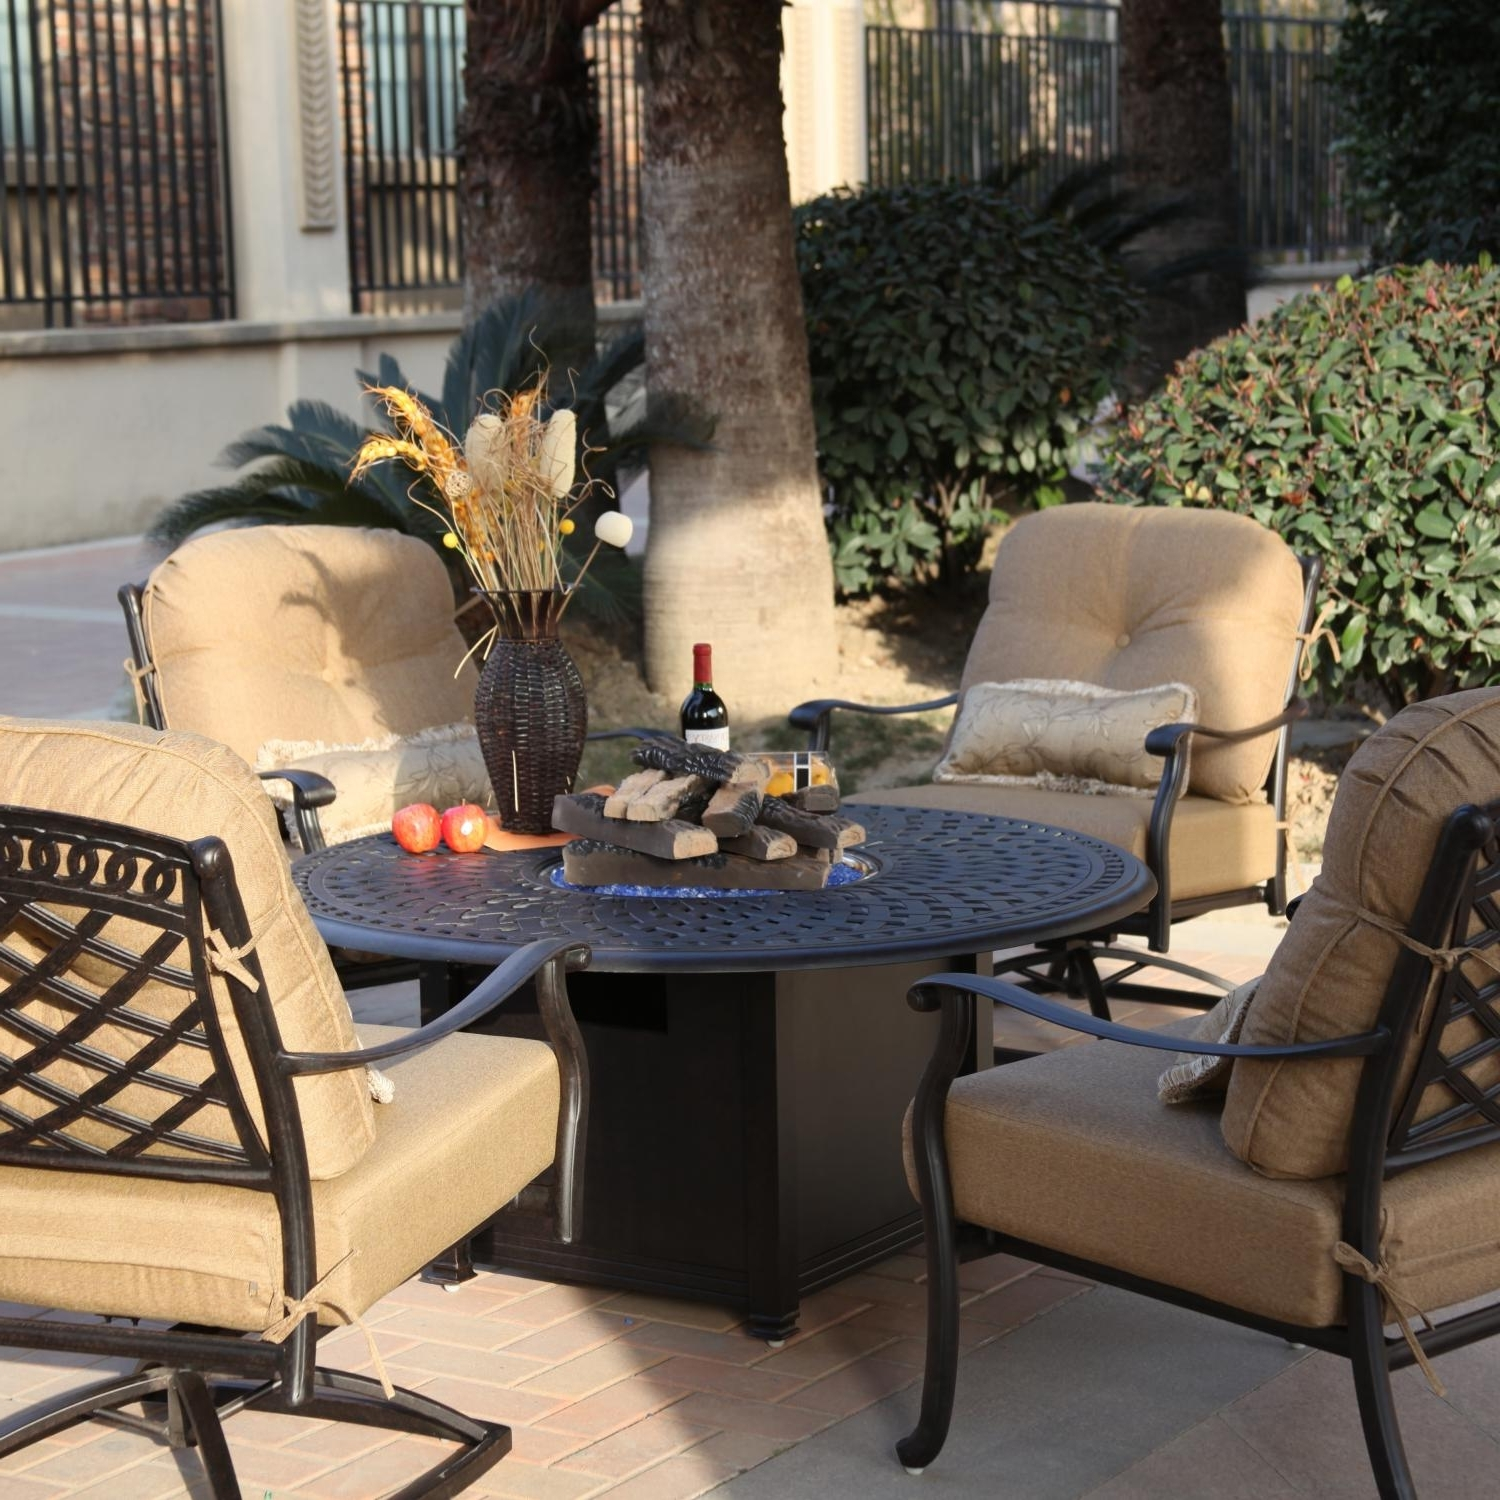 Popular Darlee Sedona 5 Piece Aluminum Patio Fire Pit Seating Set Within Patio Furniture Conversation Sets With Fire Pit (View 11 of 15)